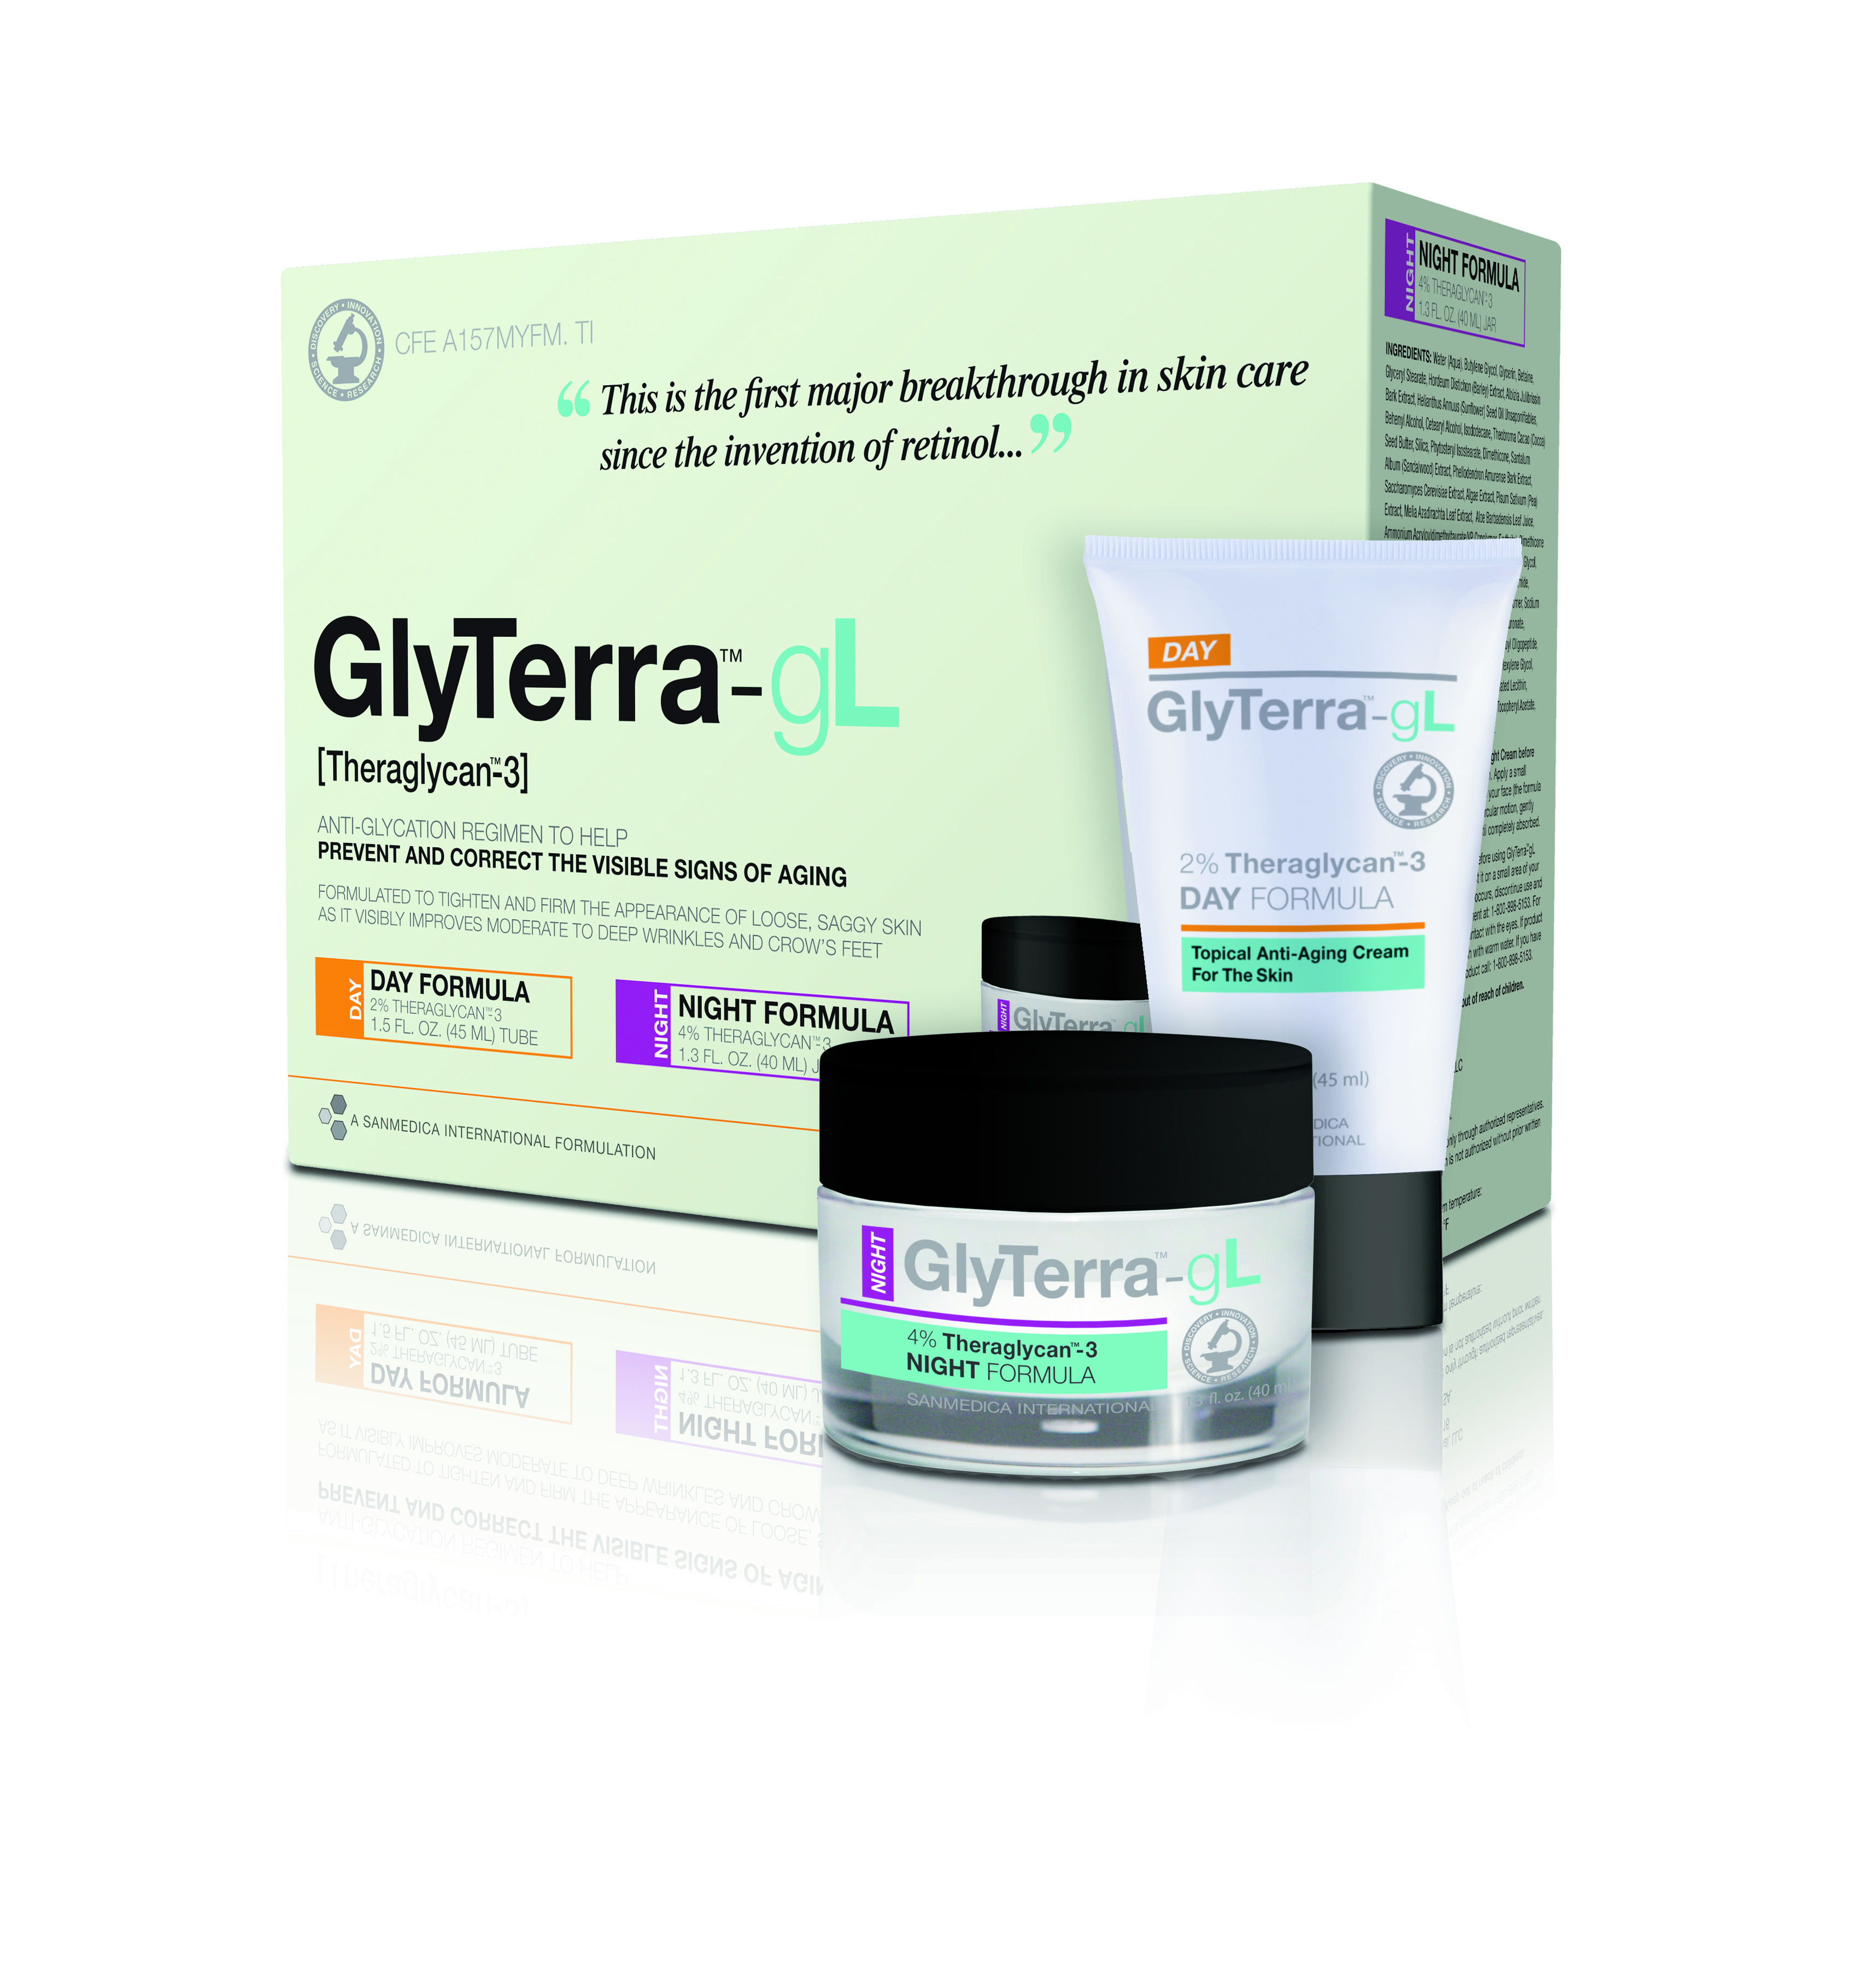 Glyterra-gL, a New Skin Tightening Breakthrough!